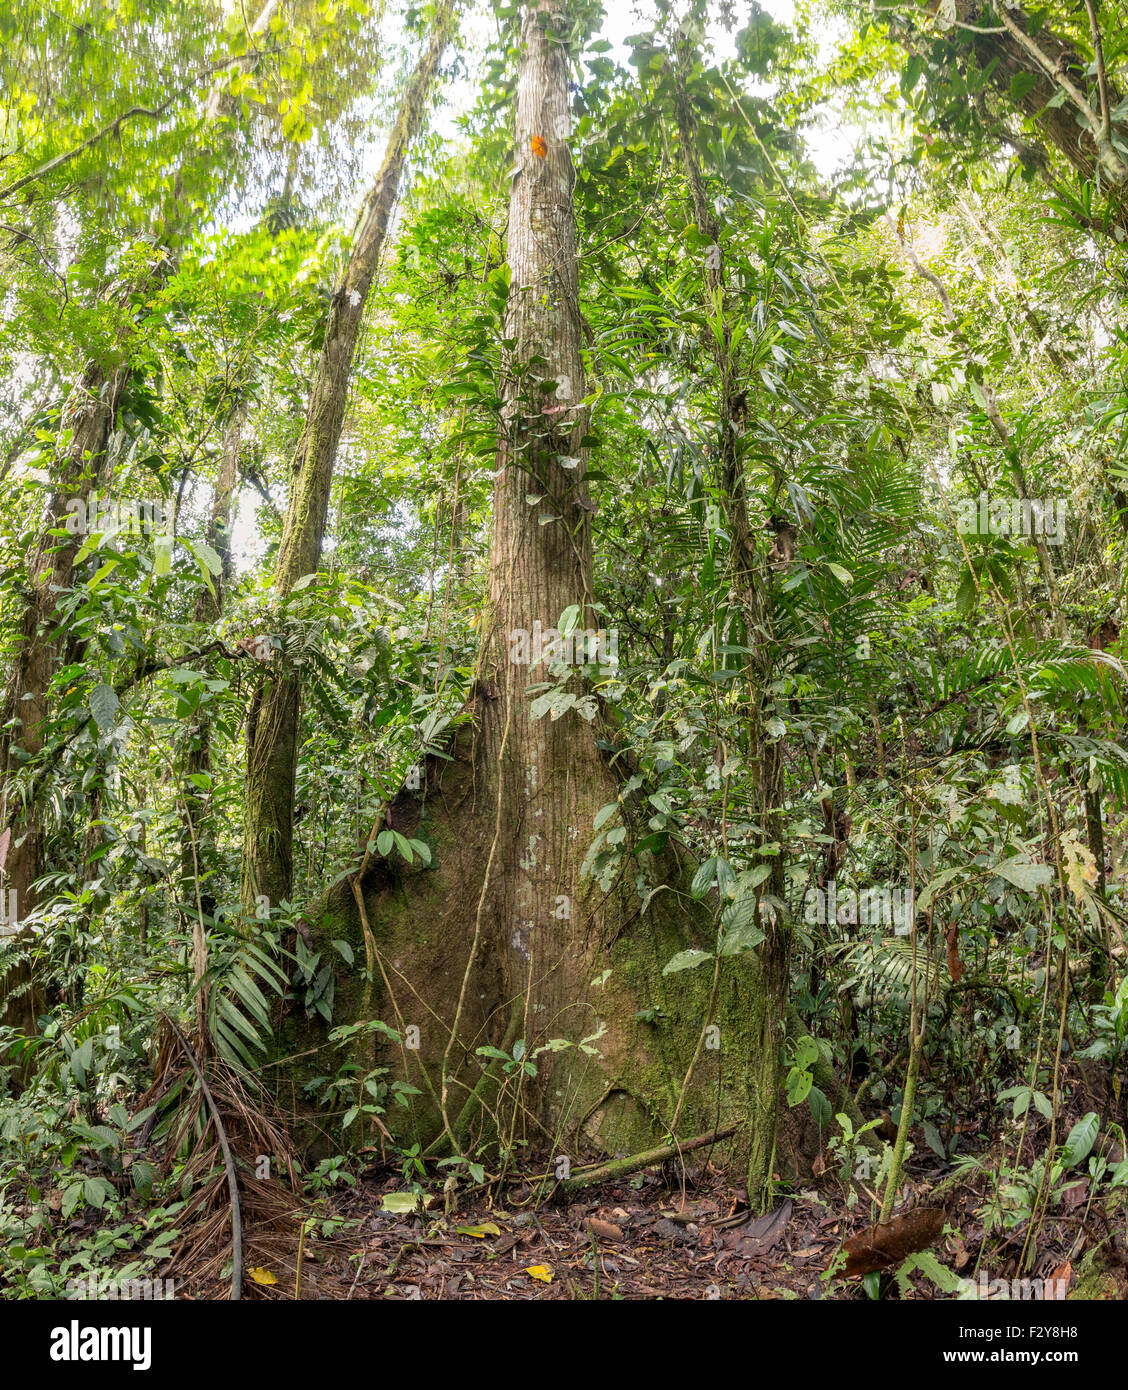 Large tree with buttress roots in tropical rainforest, Ecuador. Stock Photo